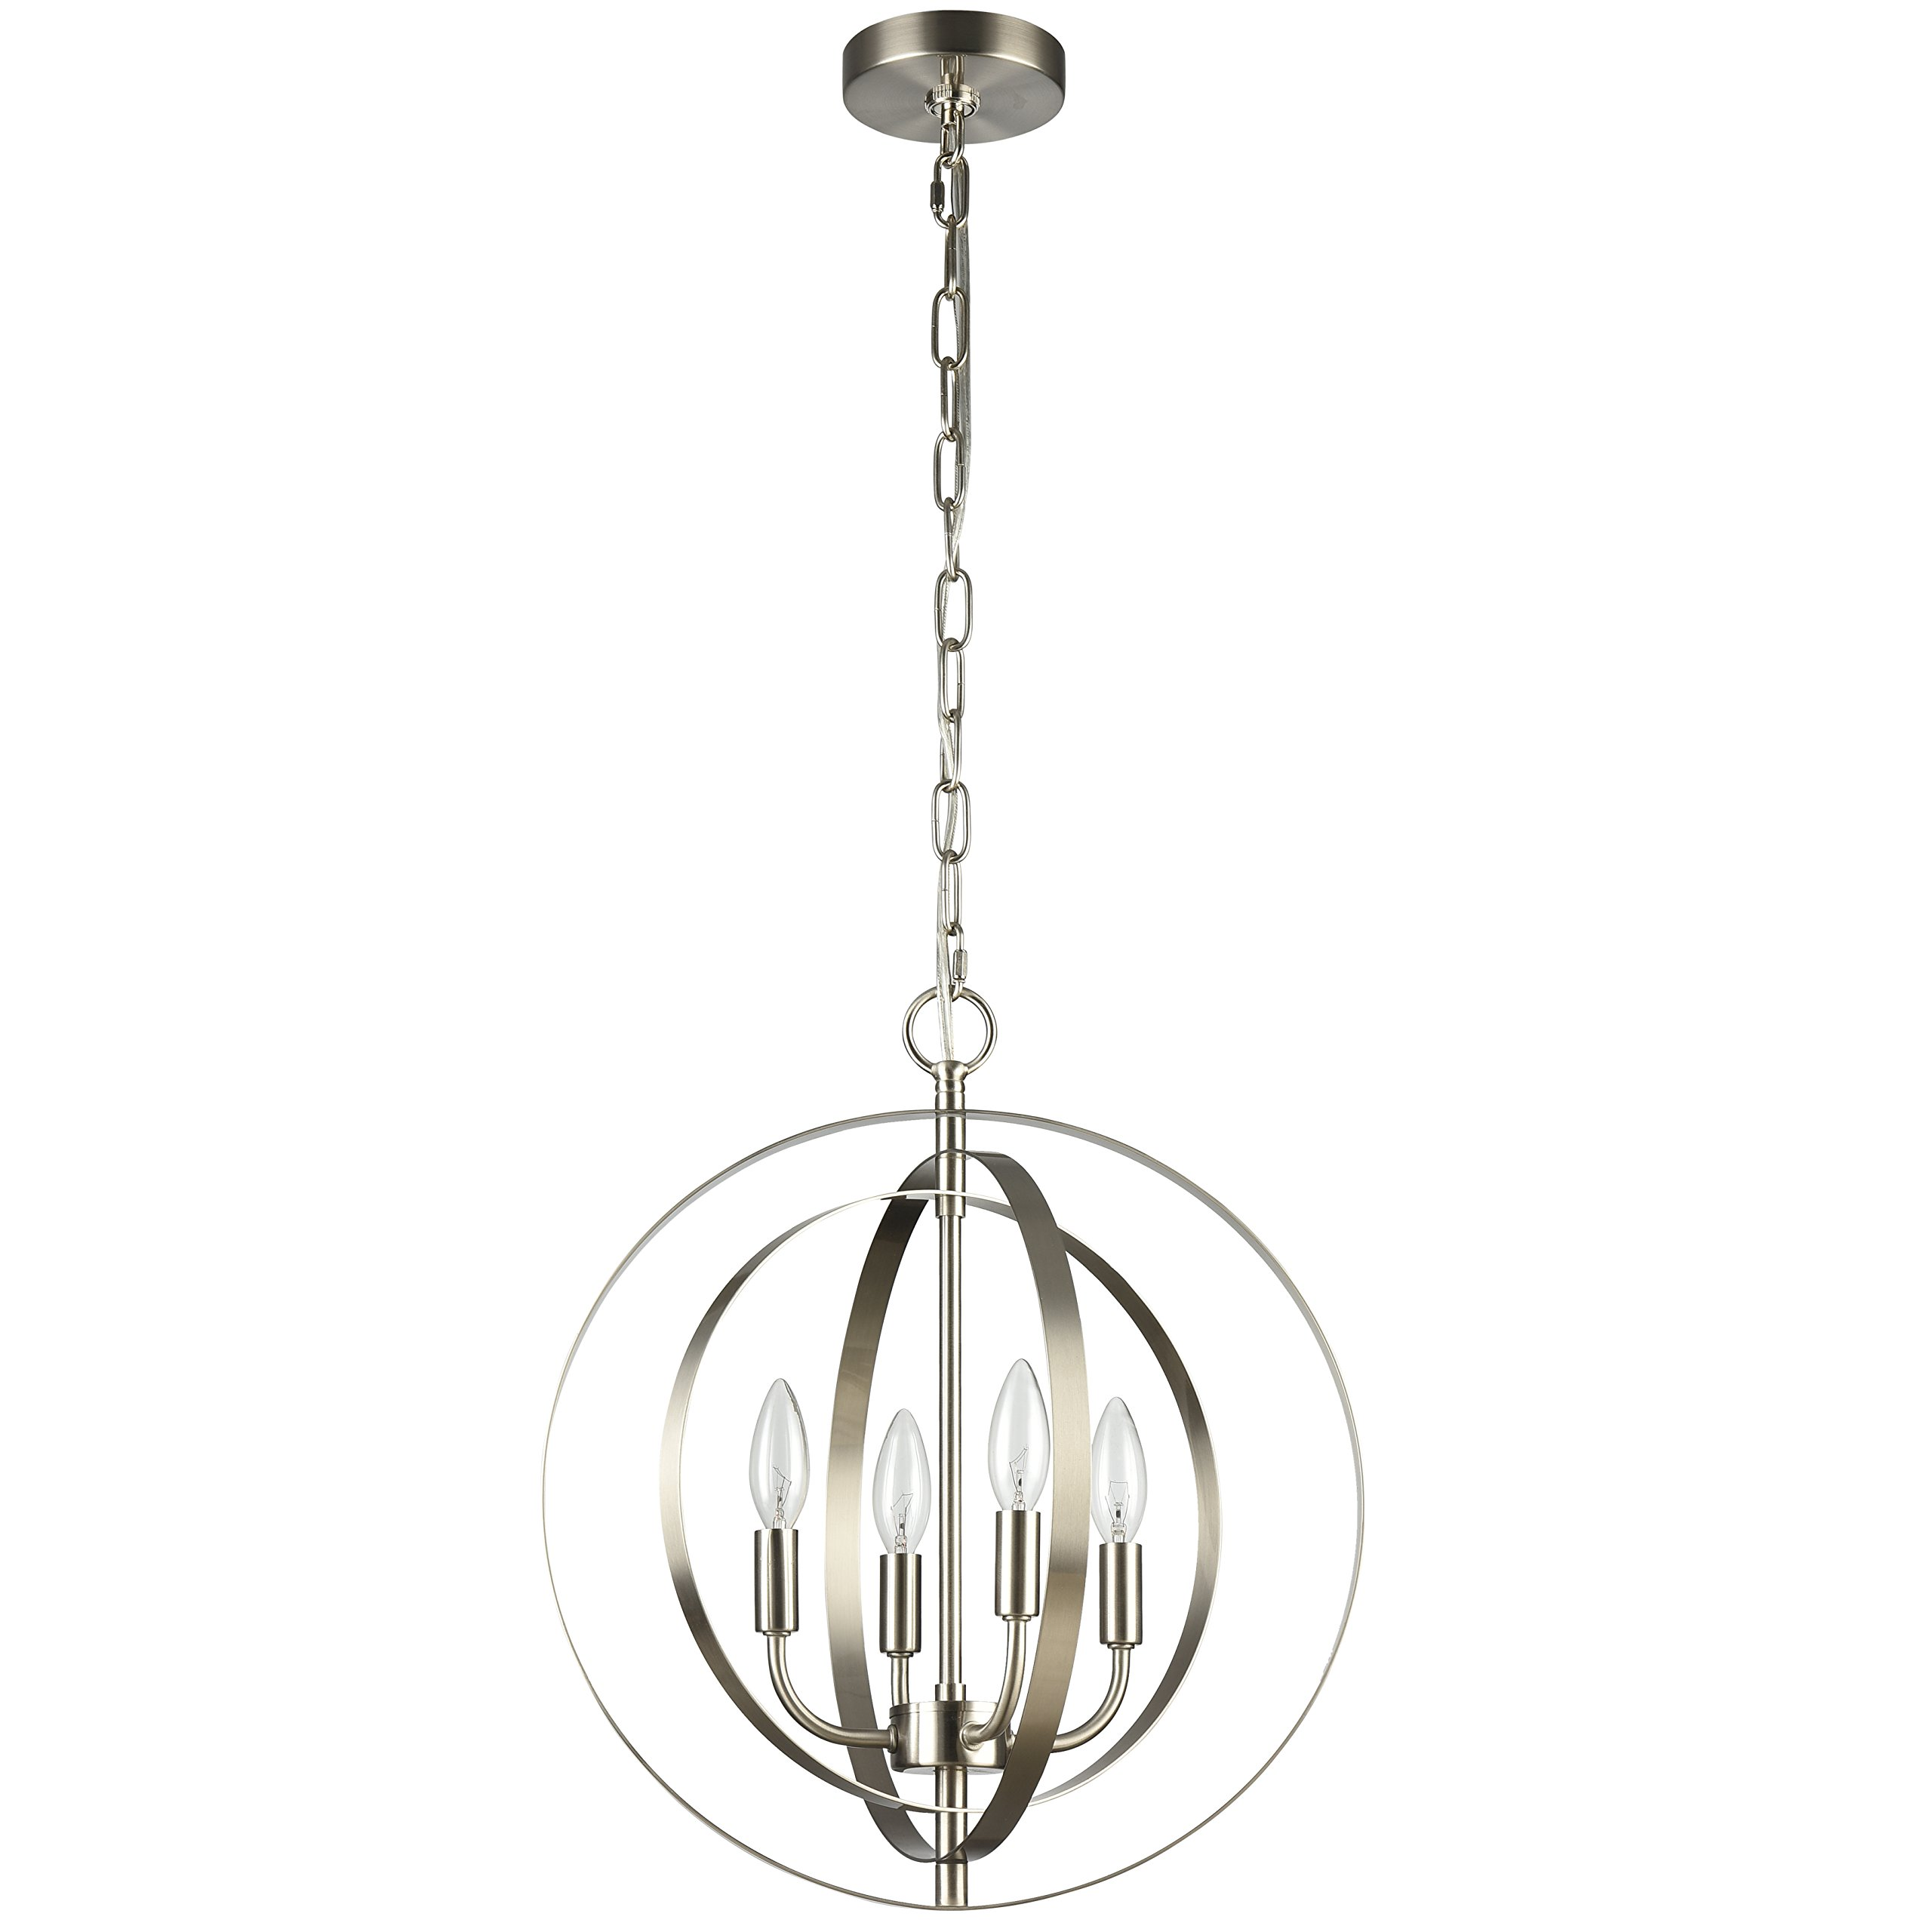 MICSIU Industrial Pendant Vintage Light,Globe Hanging Lamp Antique chandelier,Ceiling droplight Fixture For Kitchen Hallway Porch Dining Room Bedroom ,Brushed Nickel, by MICSIU